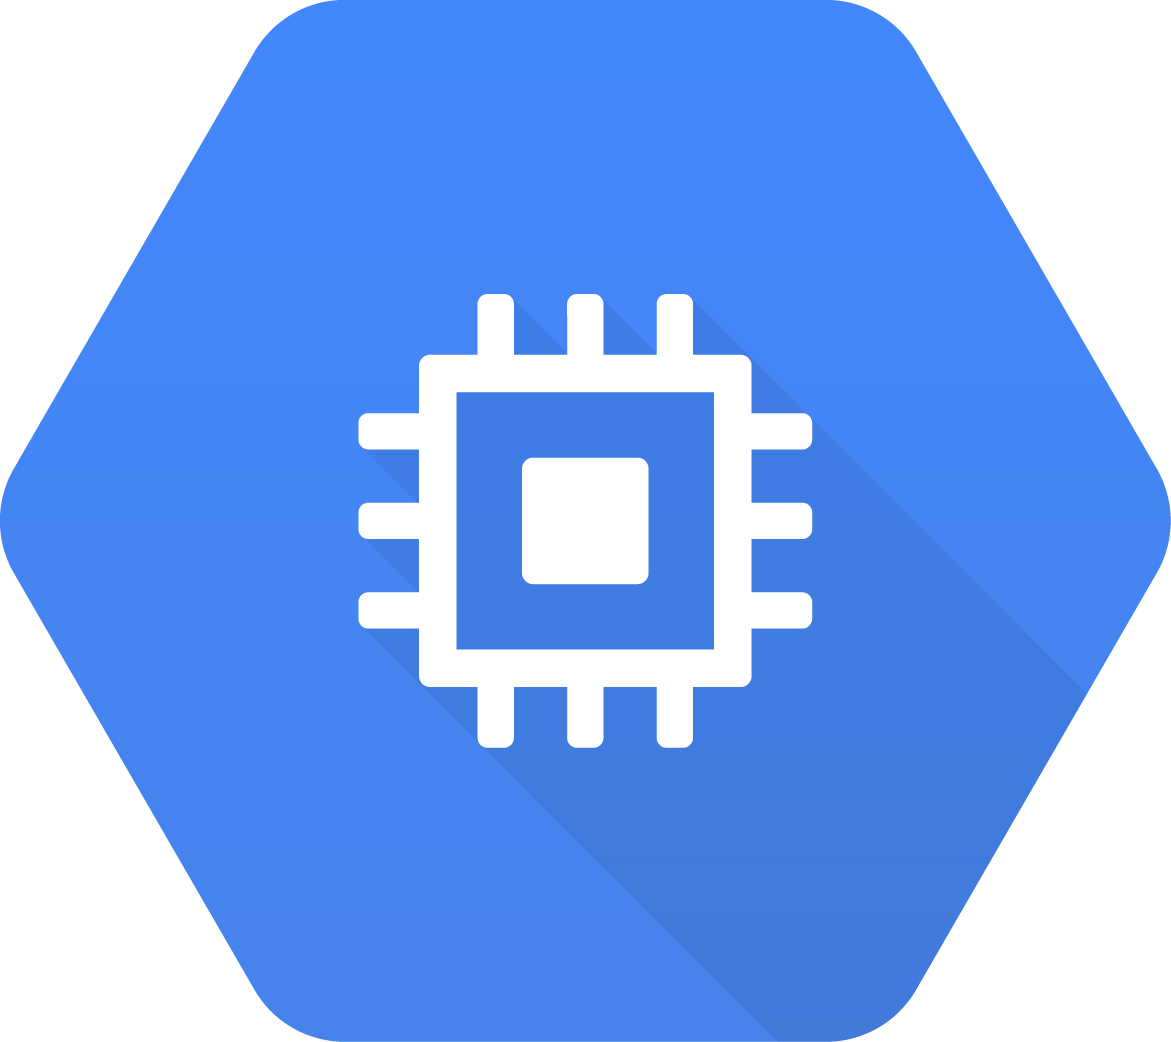 Engine Google Compute Computing App Platform Cloud PNG Image